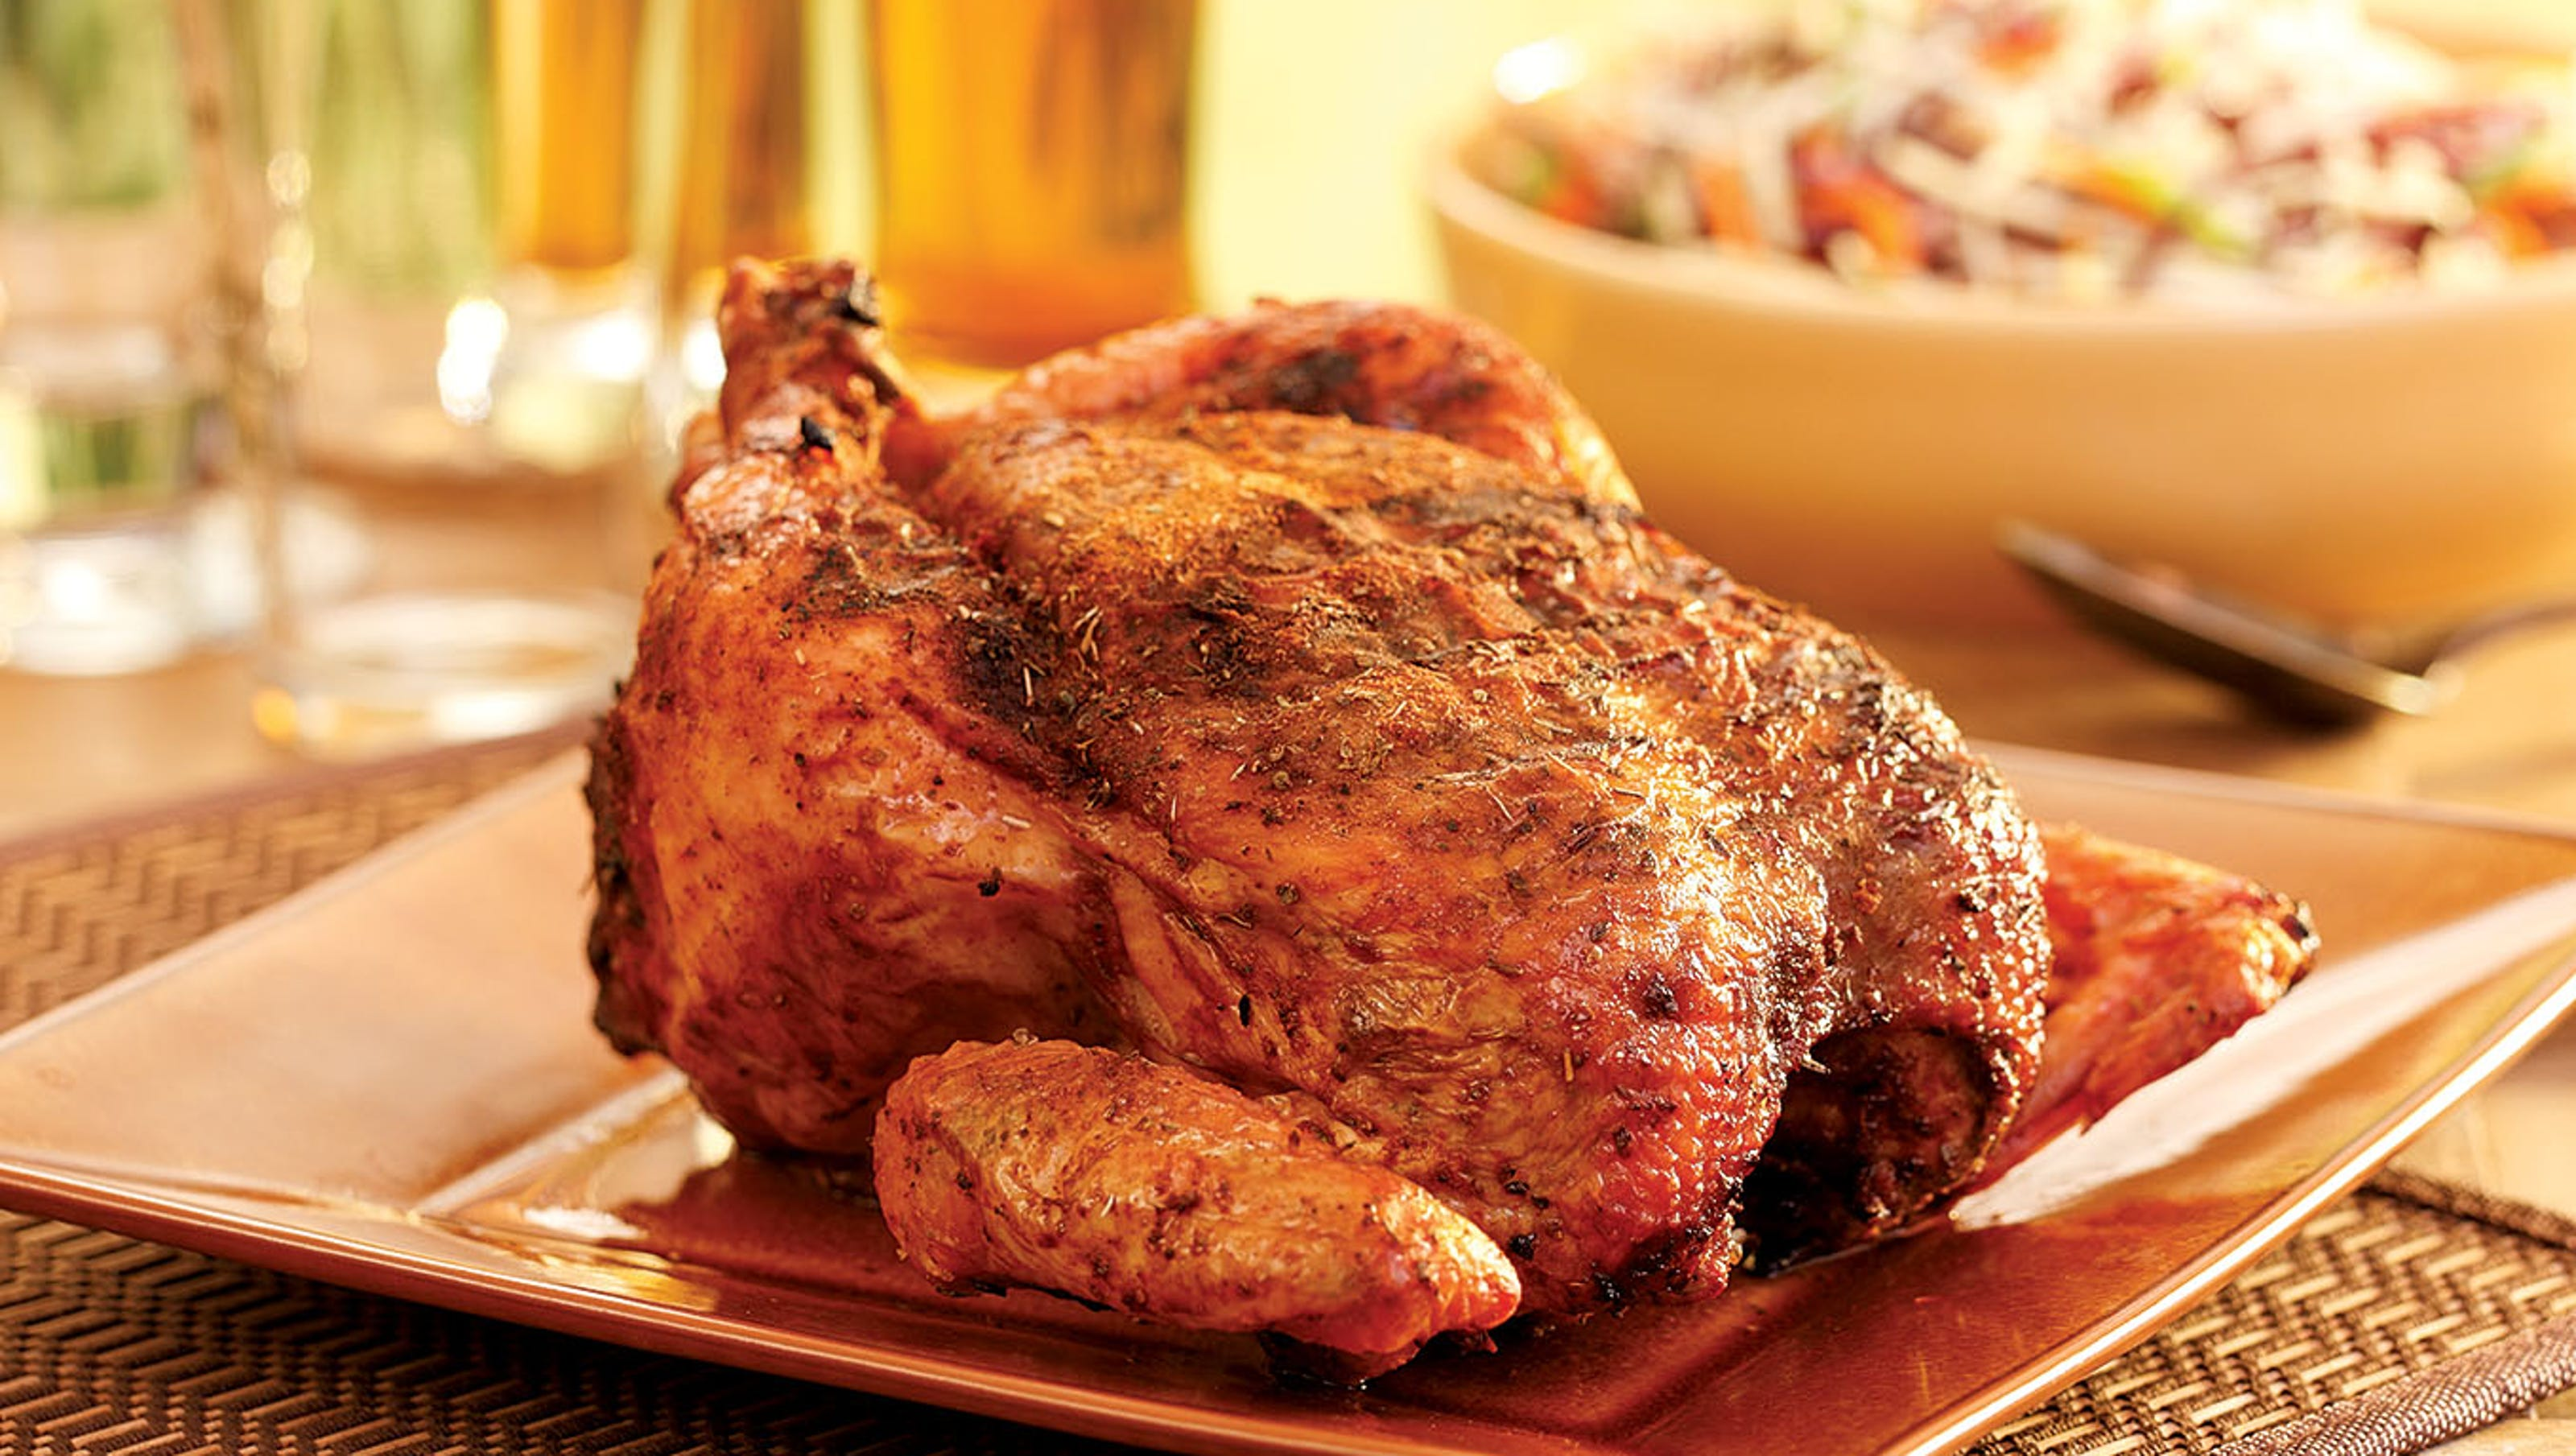 Beer-roasted chicken high in flavor, low in fat